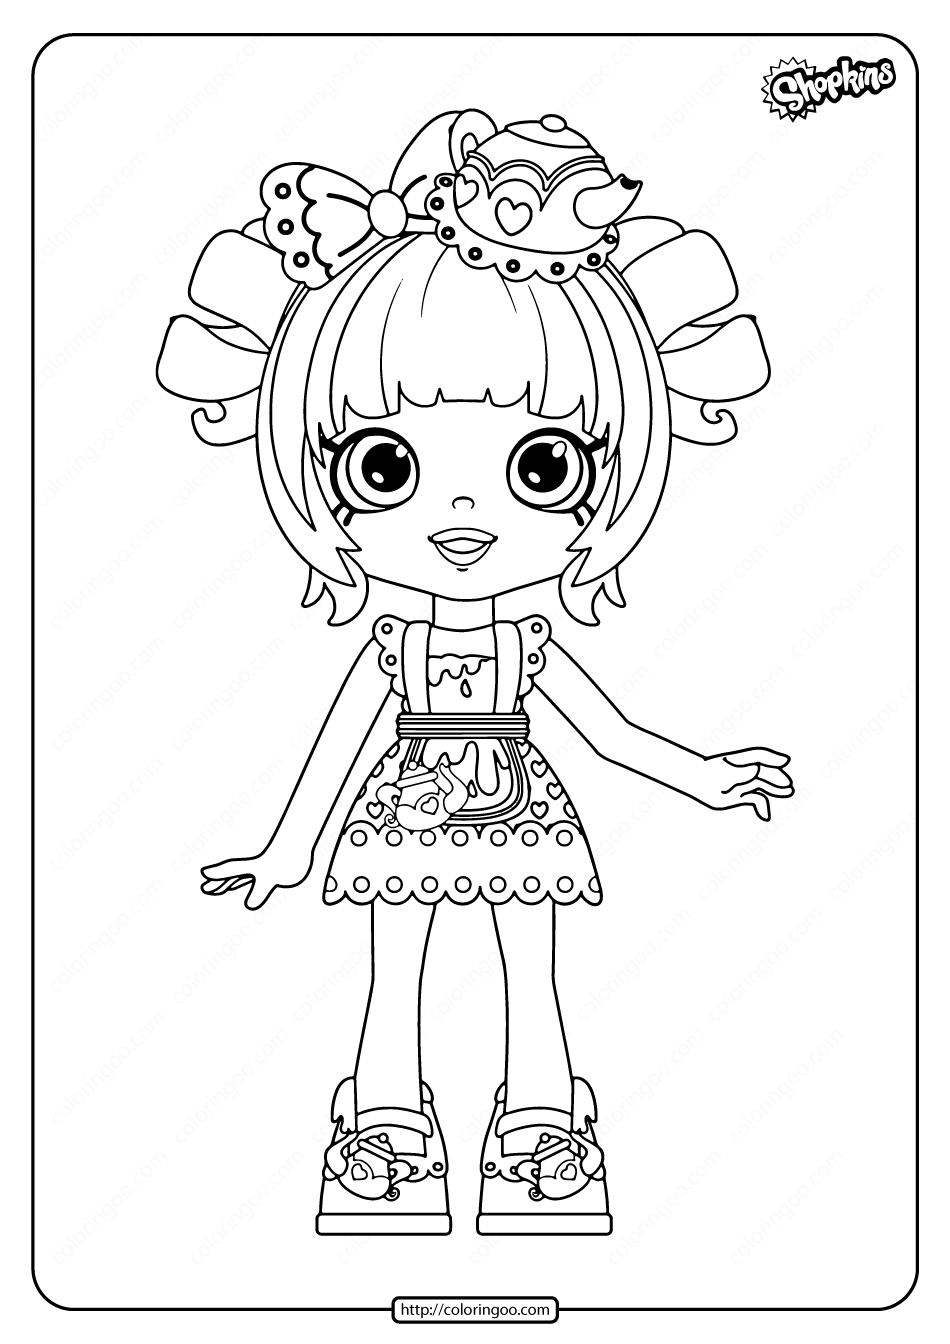 Printable Shopkins Tippy Teapot Coloring Pages